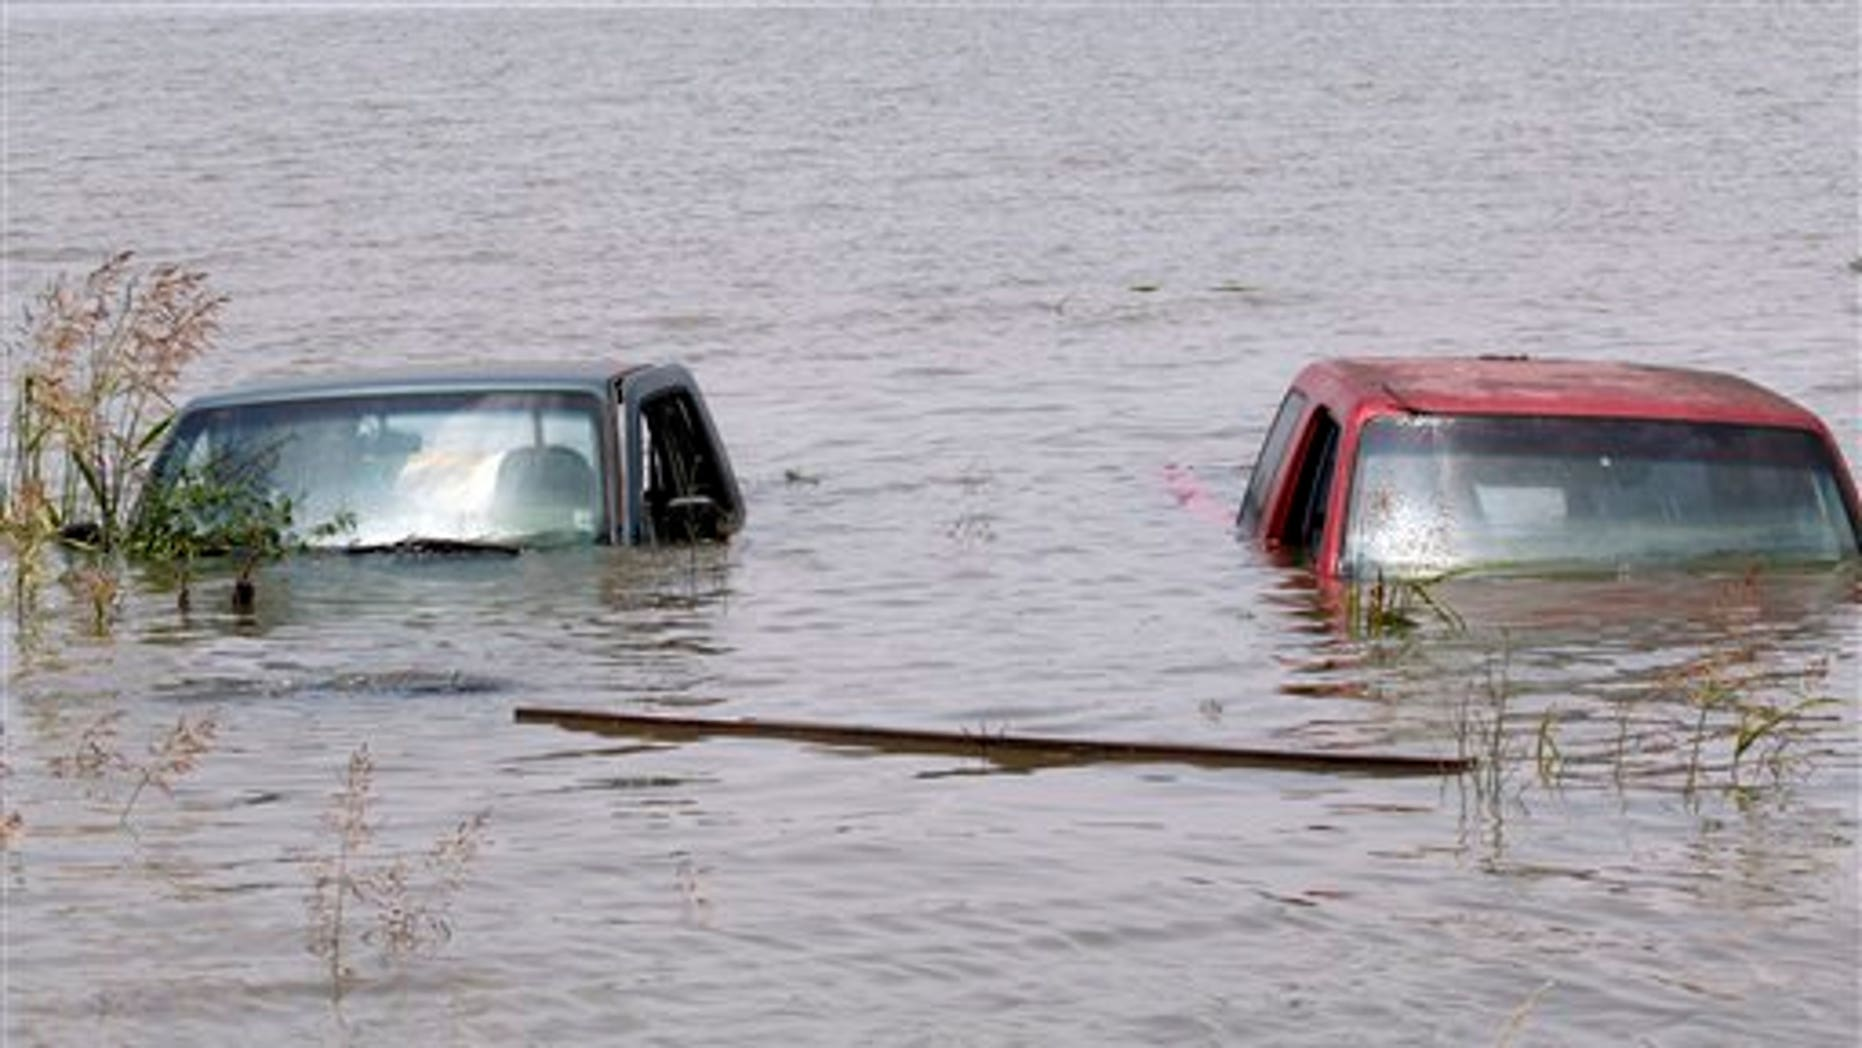 May 23: Vehicles are submerged in flood waters at a parking lot on the outskirts of Yazoo City, Miss.